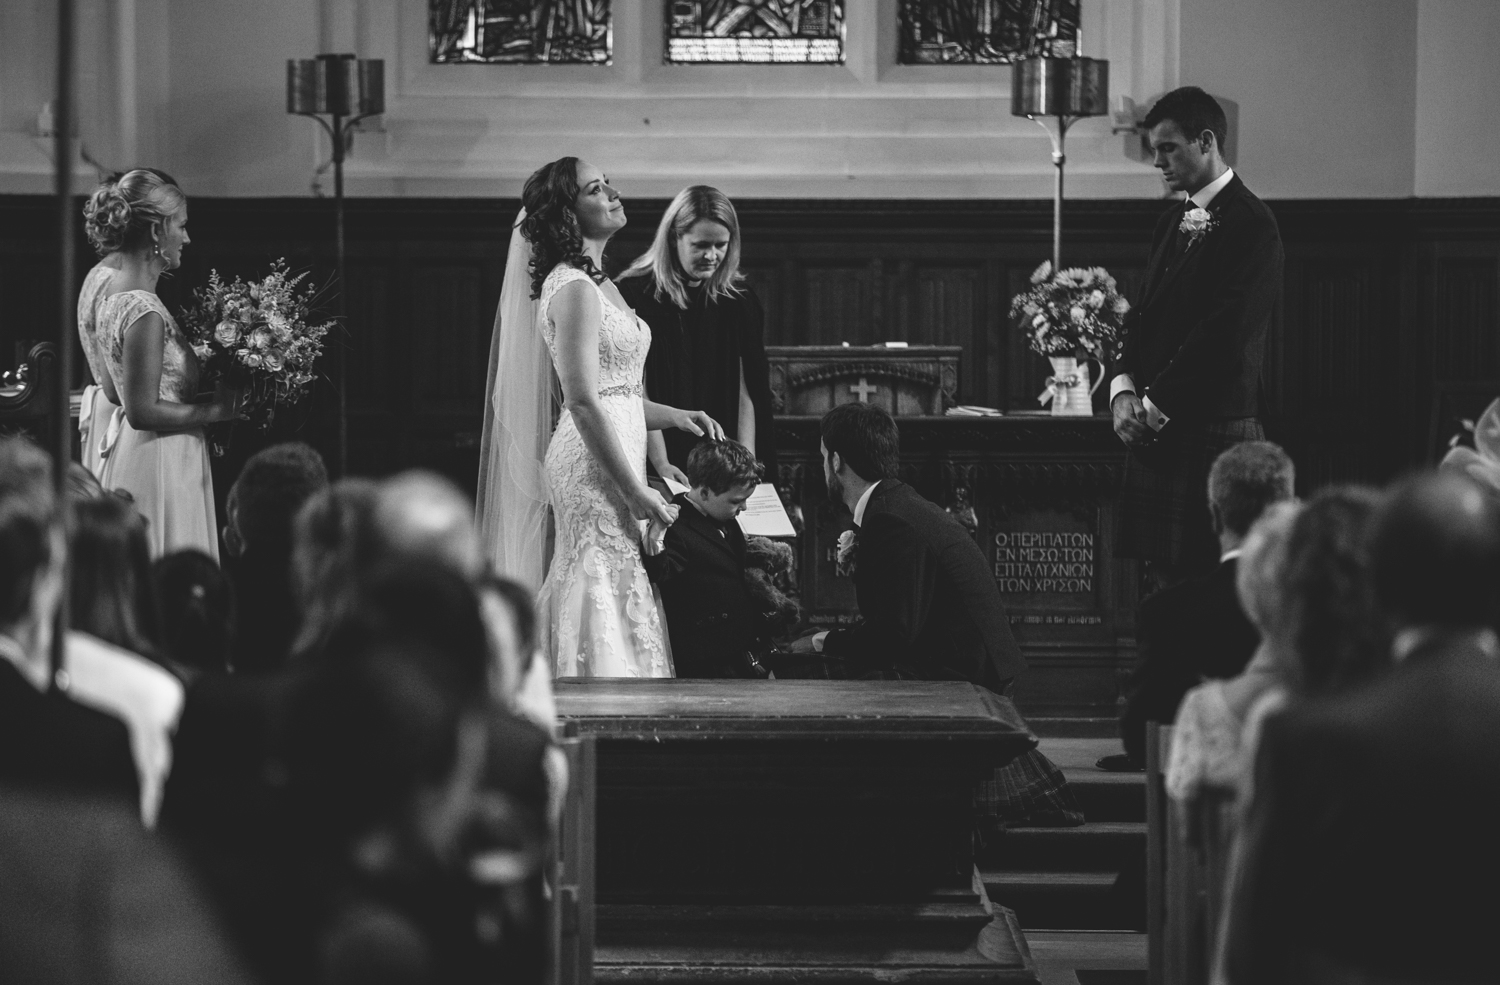 getting married in aberdeen, getting married at kings college, aberdeen wedding photography, wedding photographers in aberdeen, wedding at kings college chapel